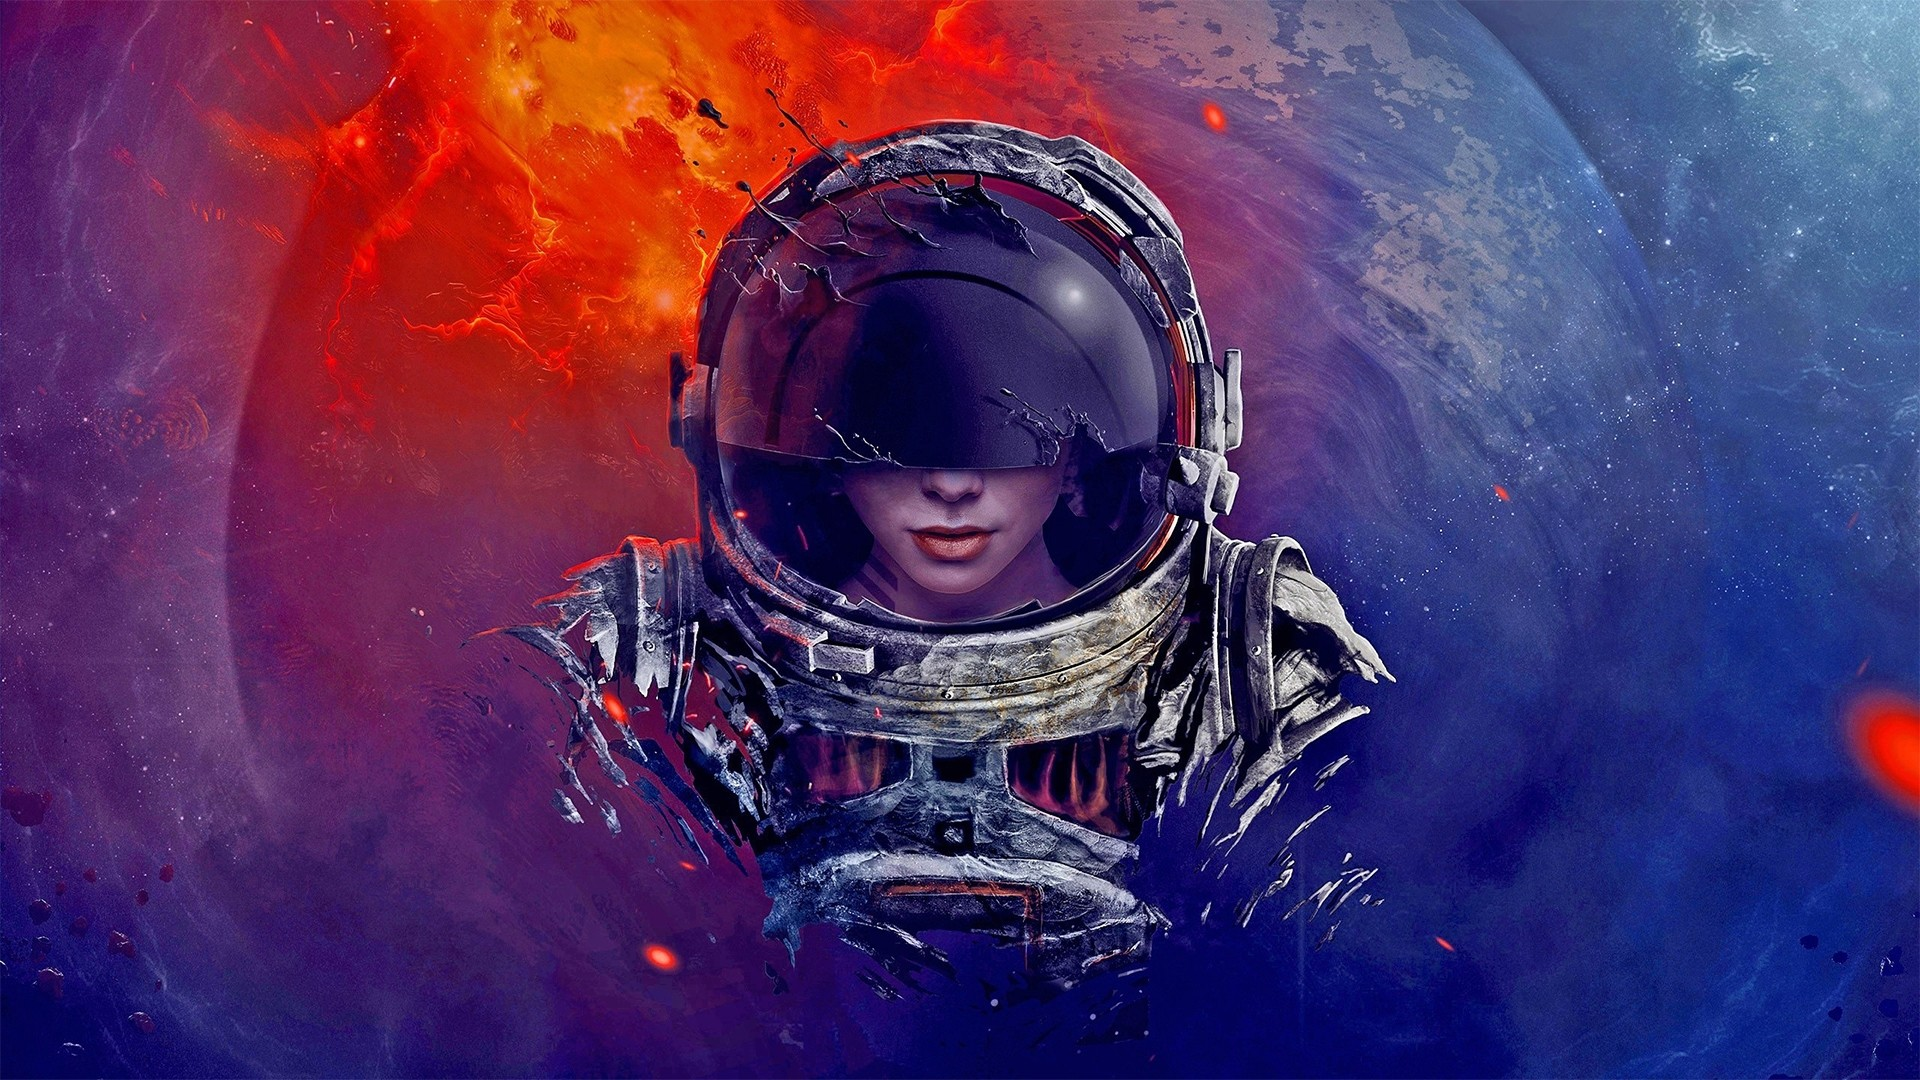 Astronaut Wallpaper and Background